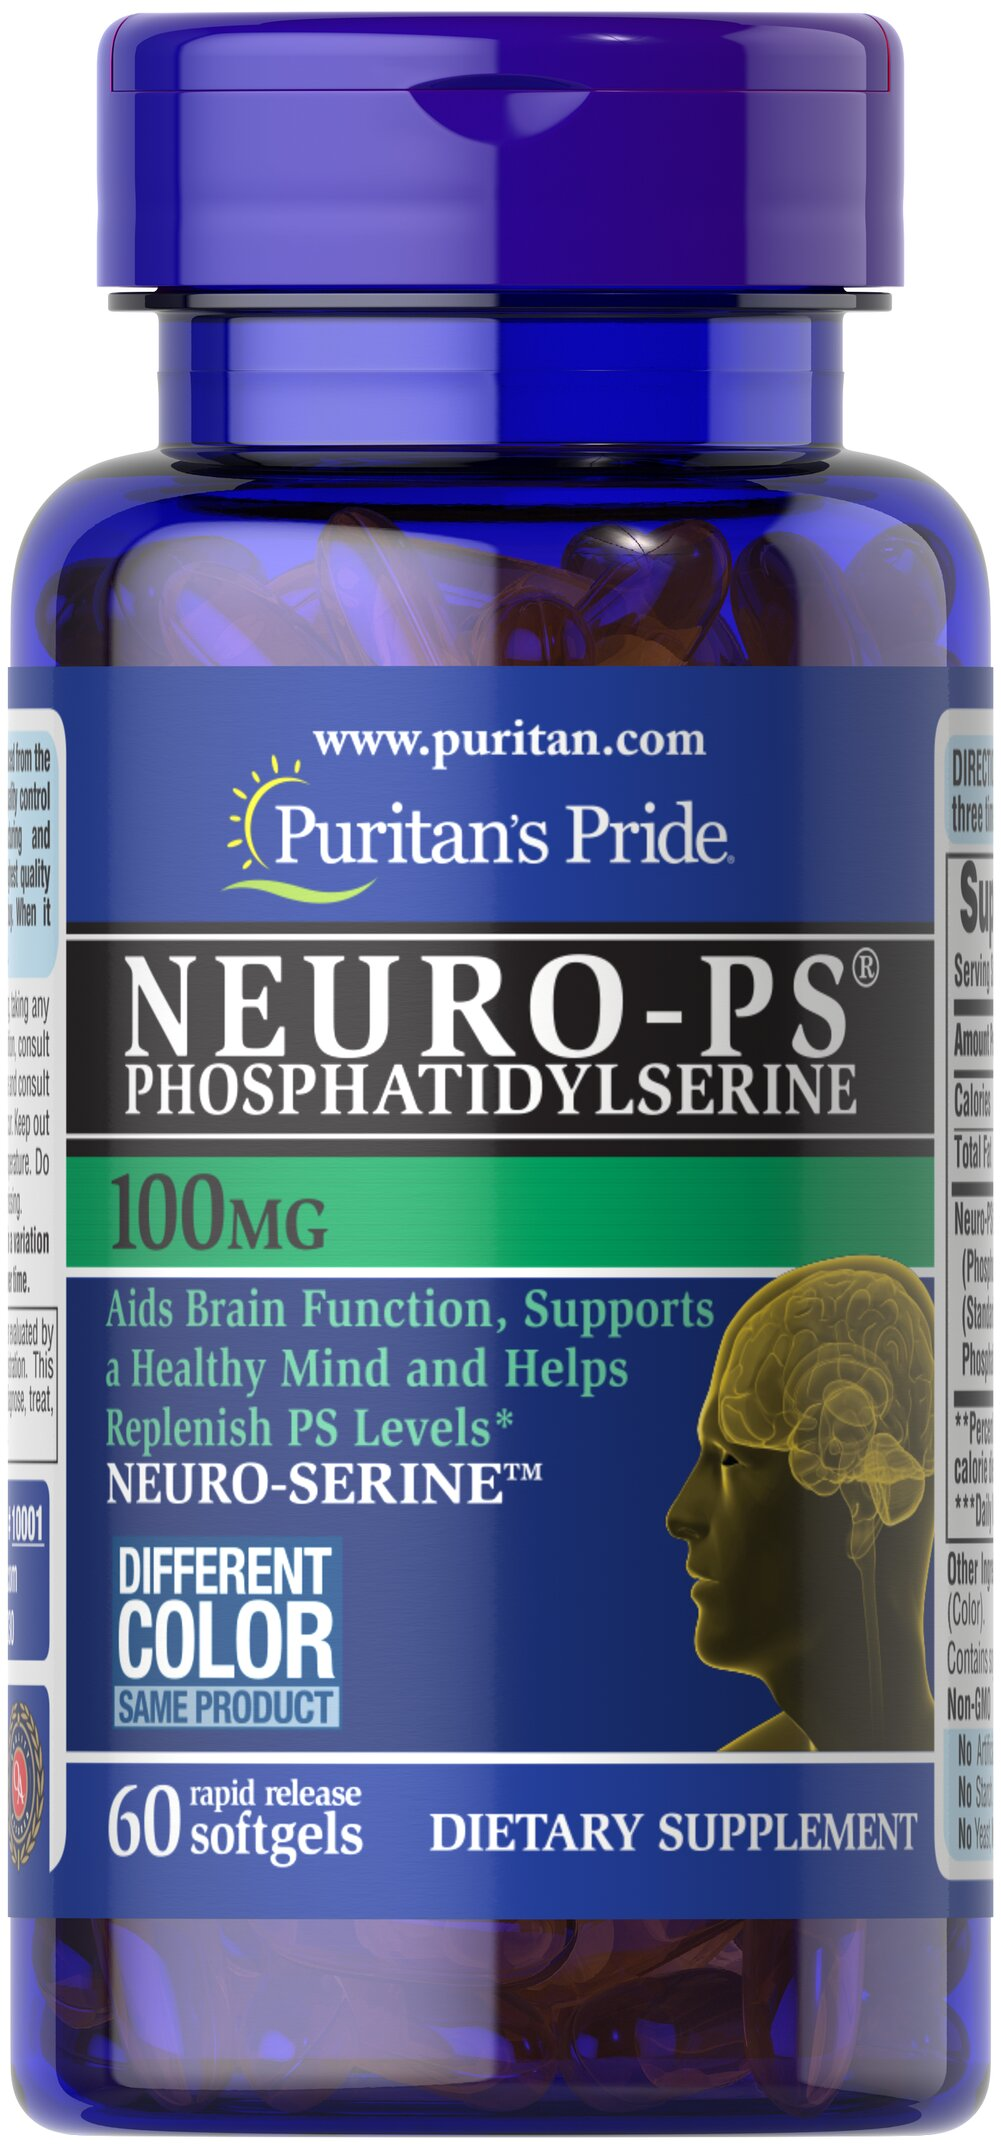 Neuro-Ps (Phosphatidylserine) 100 mg • High Potency 300mg Neuro-PS <br /><br />Think Sharp™ with Phosphatidylserine (PS), a natural substance found in brain cell membranes.** PS plays a role in neurotransmission and supports brain function.** Some studies show that phospholipids such as Phosphatidylserine may decline with age, which is why supplementation is so important.** Very limited and preliminary scientific research suggests that PS may reduce the risk of cognitive dysfunction